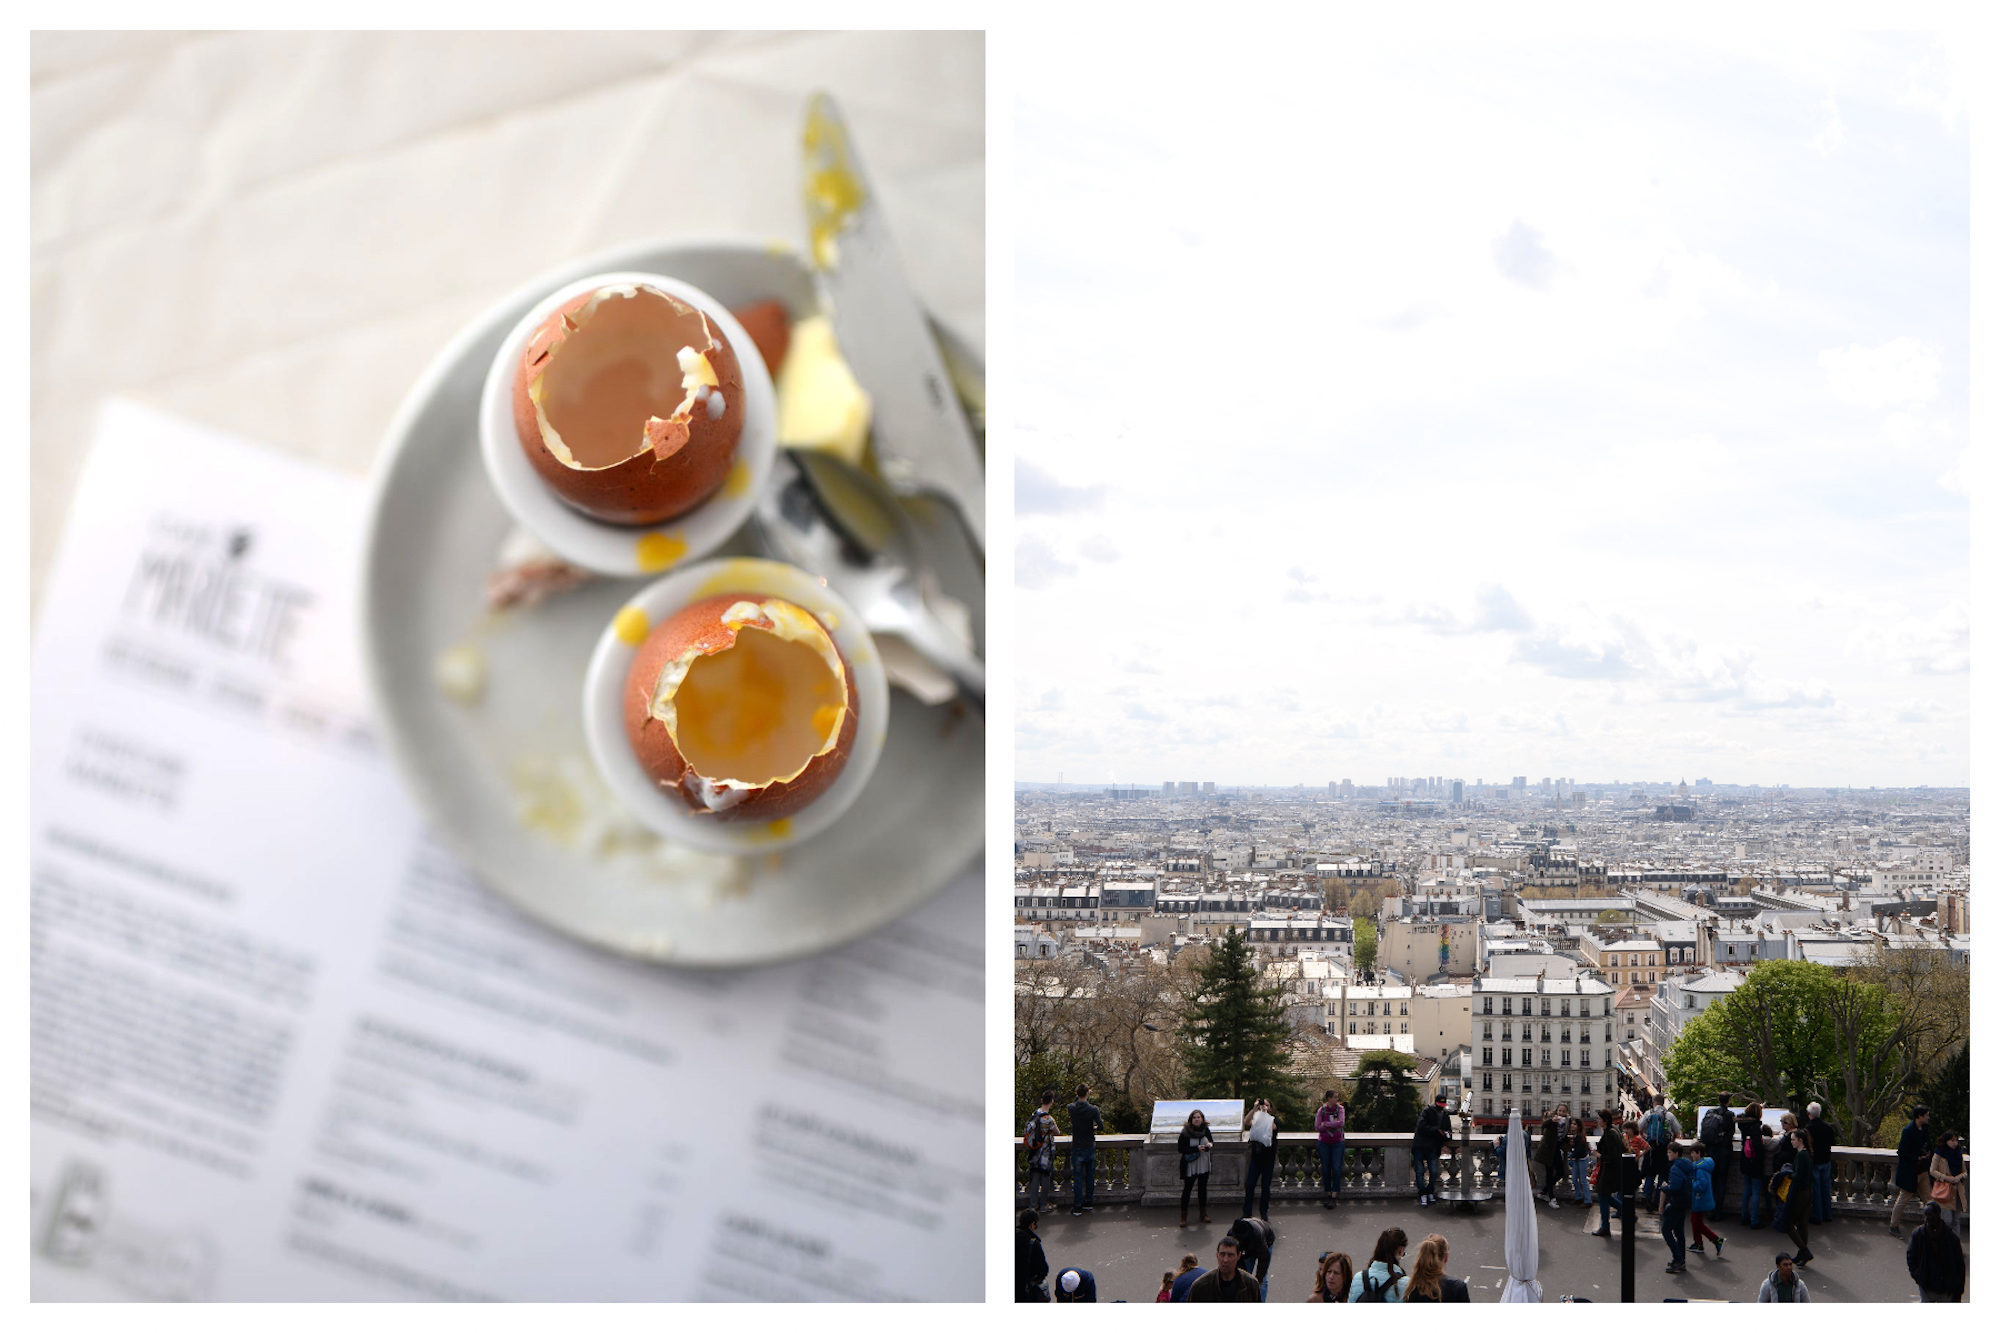 Breakfast of runny eggs that have been eaten, set on a plate on a menu at a Parisian bistro (left). The panoramic view of the Paris rooftops from the top of Montmartre (right).